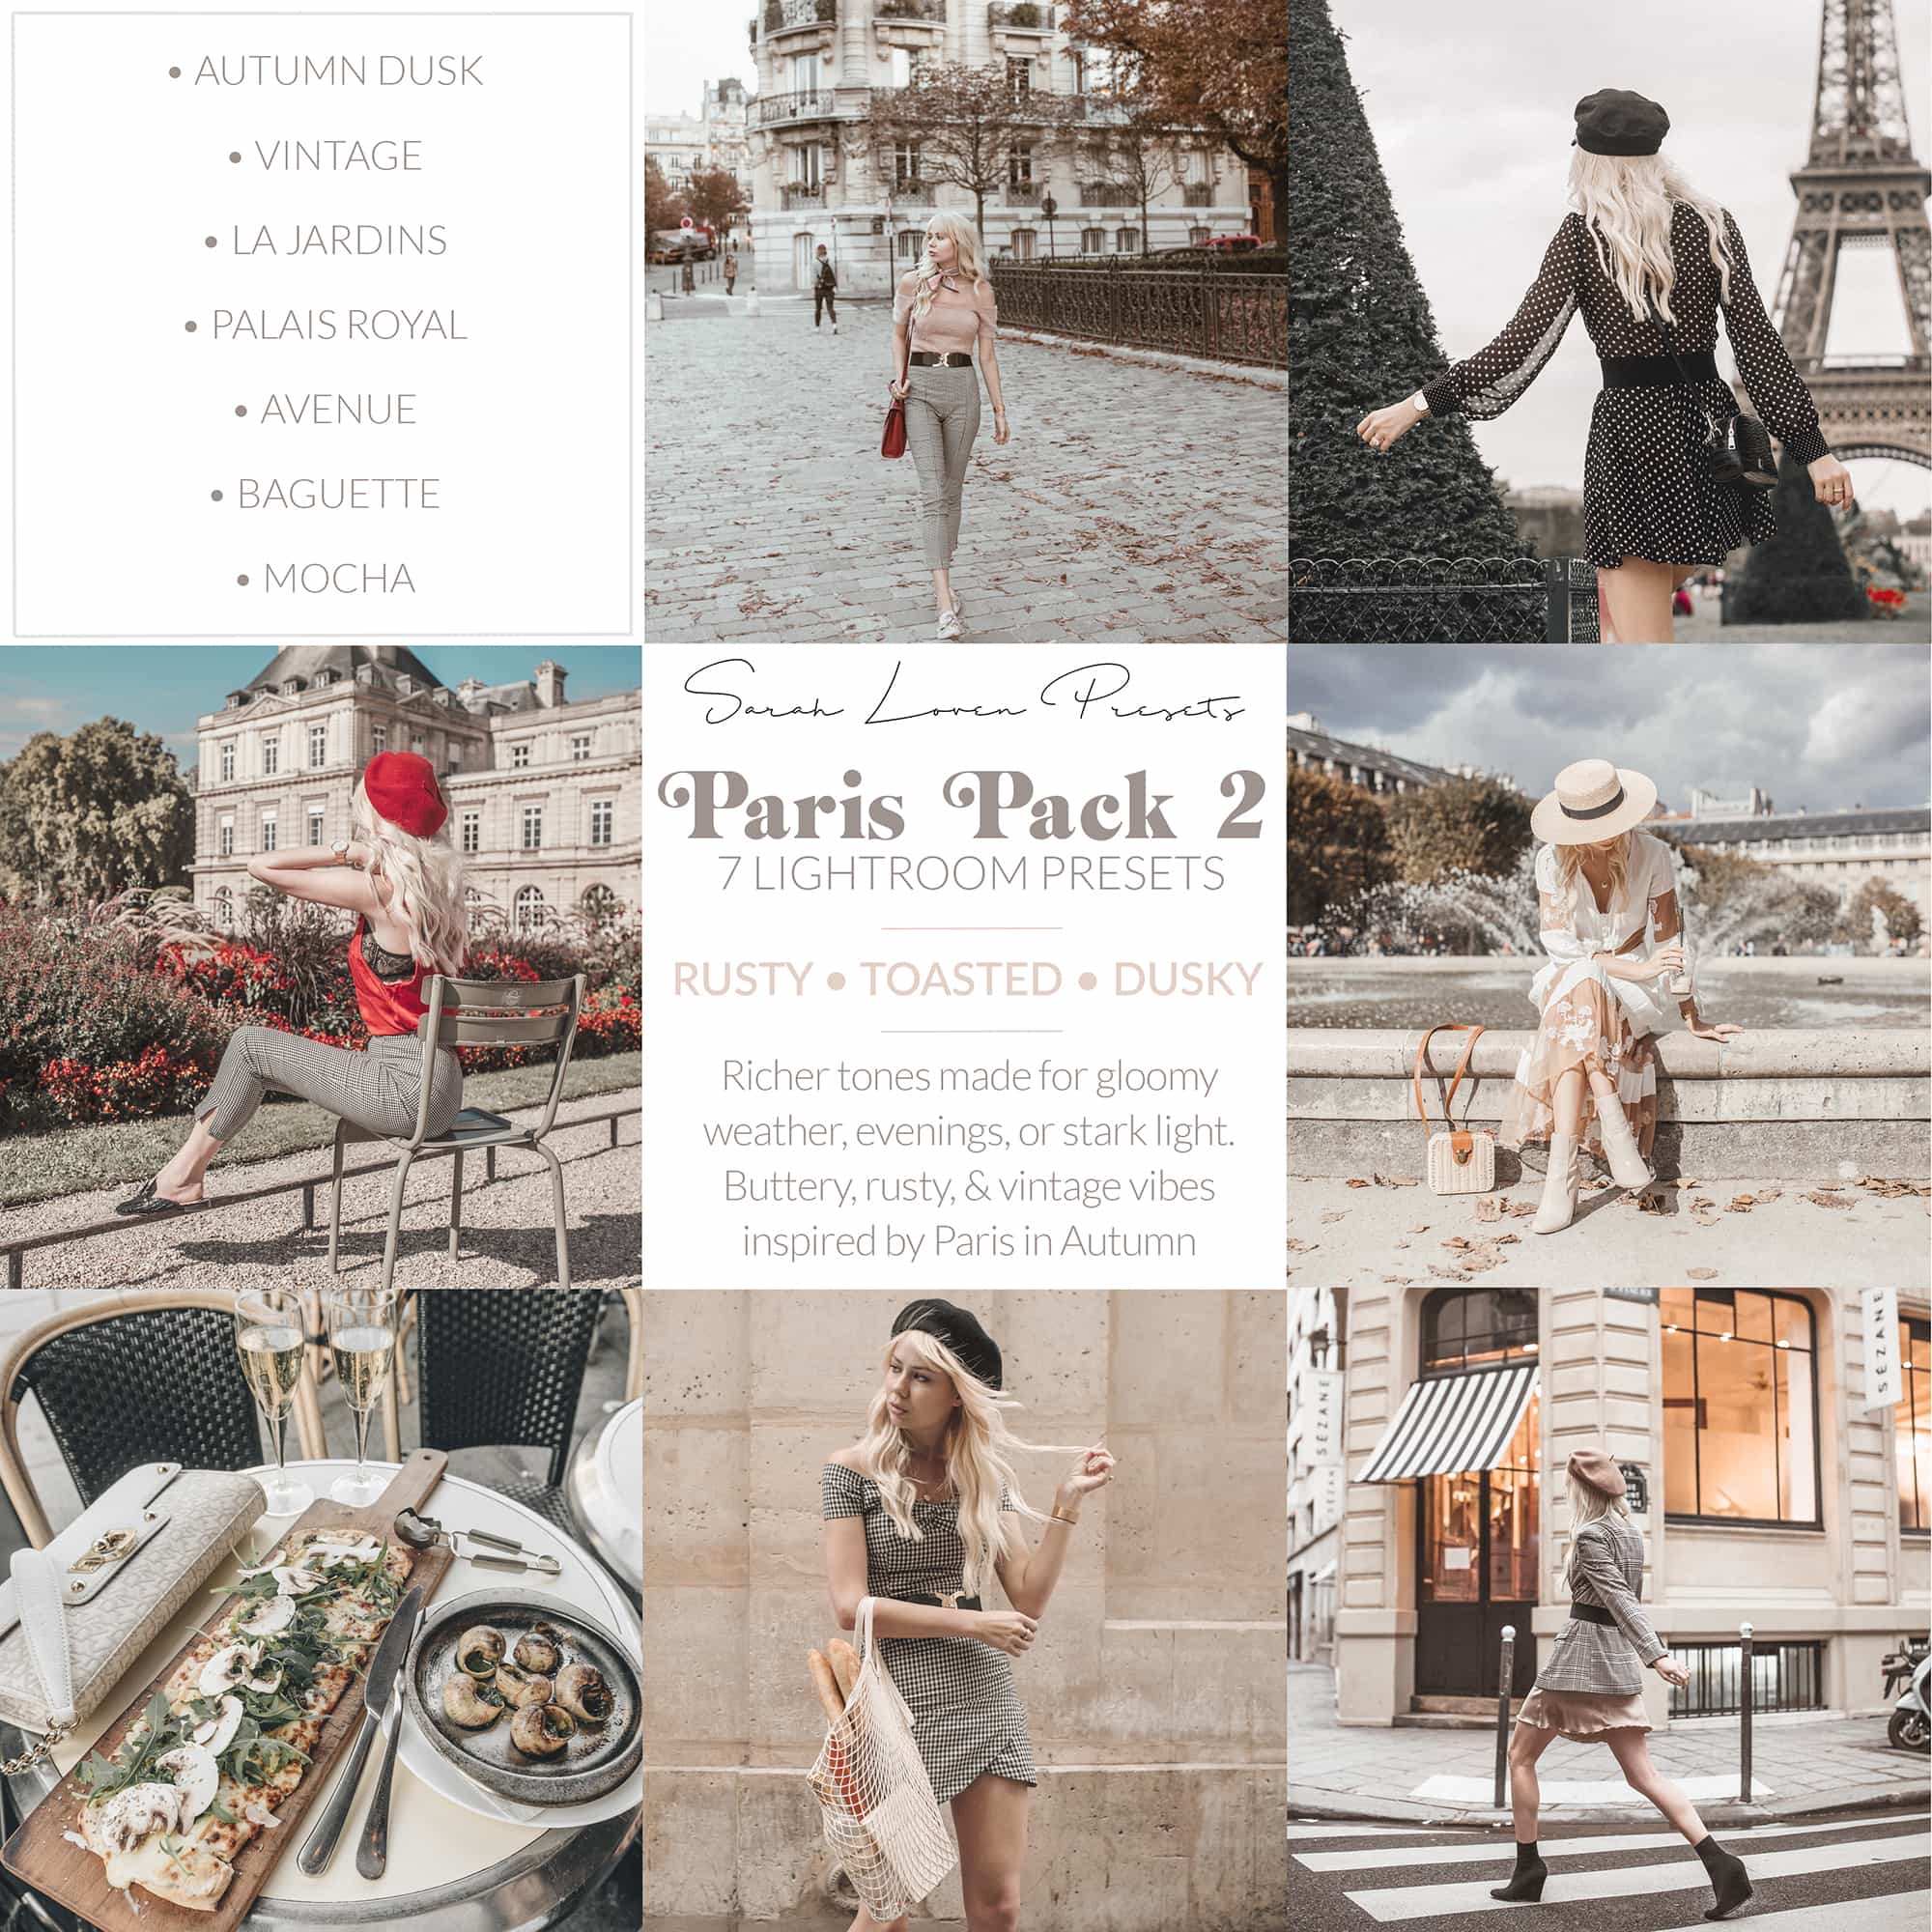 Sarah Lovens Paris Pack 2 for Adobe Lightroom.